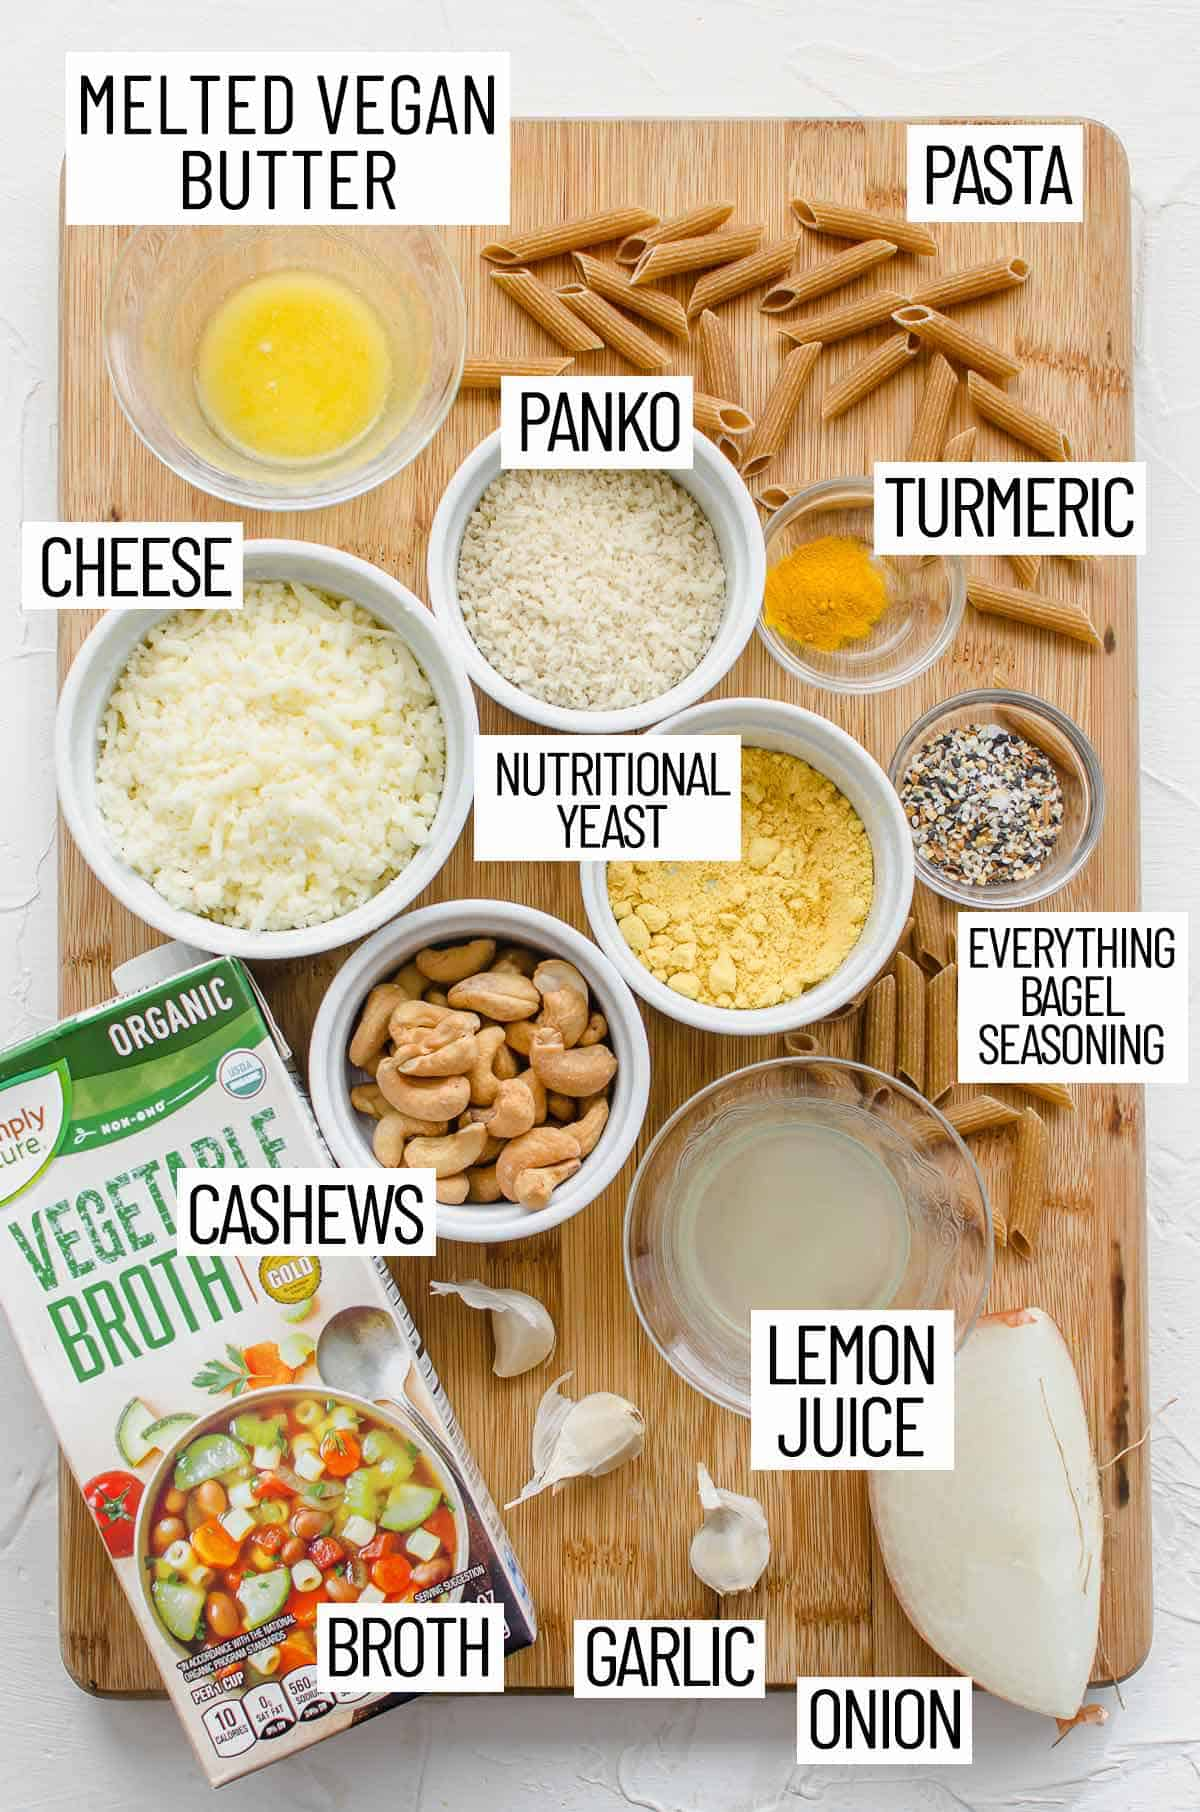 Overhead photo of ingredients for everything bagel mac and cheese including broth, garlic onion, lemon juice, everything bagel seasoning, nutritional yeast, cheese, panko, turmeric, pasta, and melted butter.